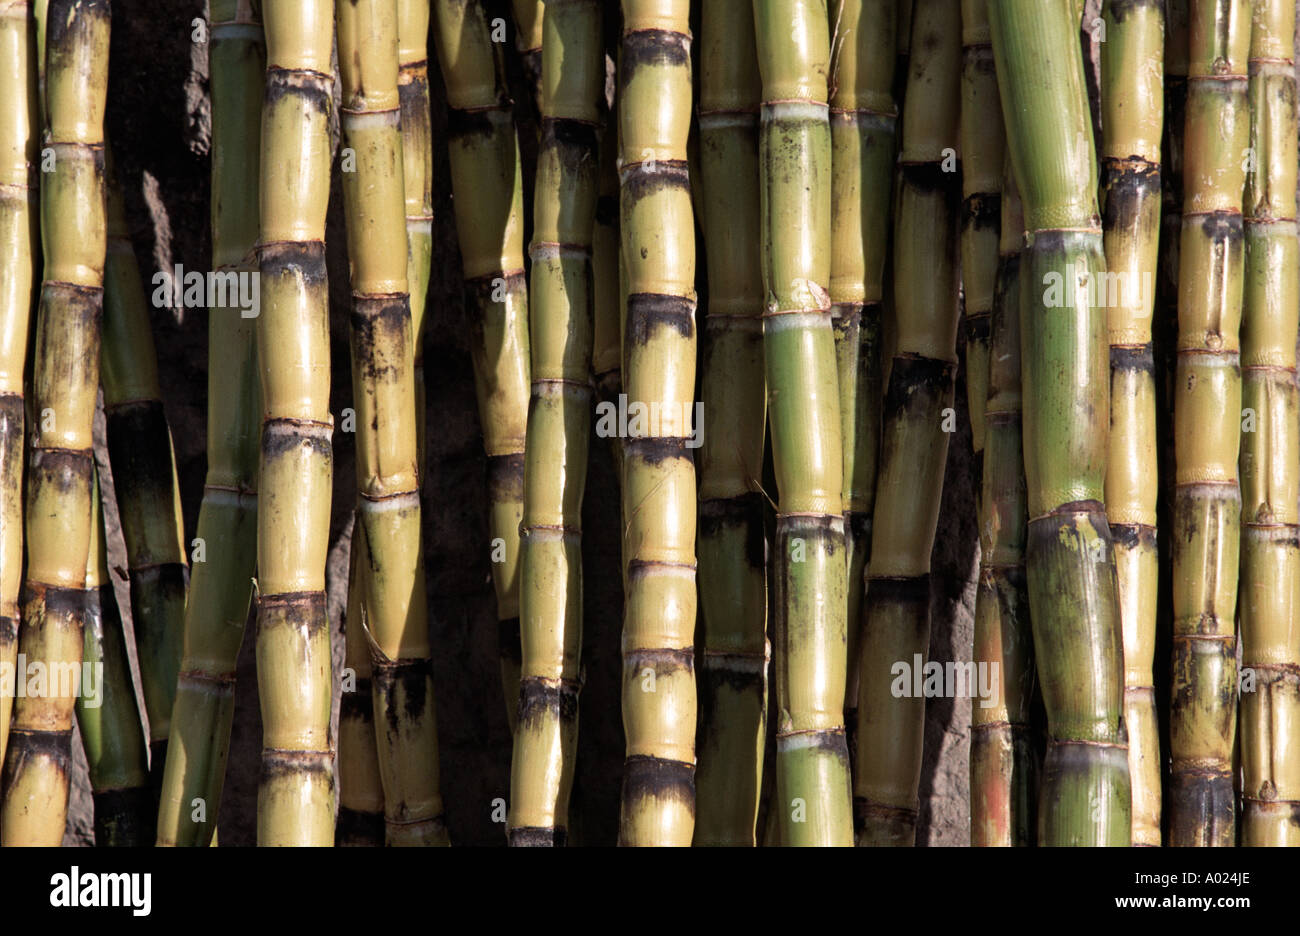 Stacked sugar cane for sale at market Otavalo Ecuador - Stock Image